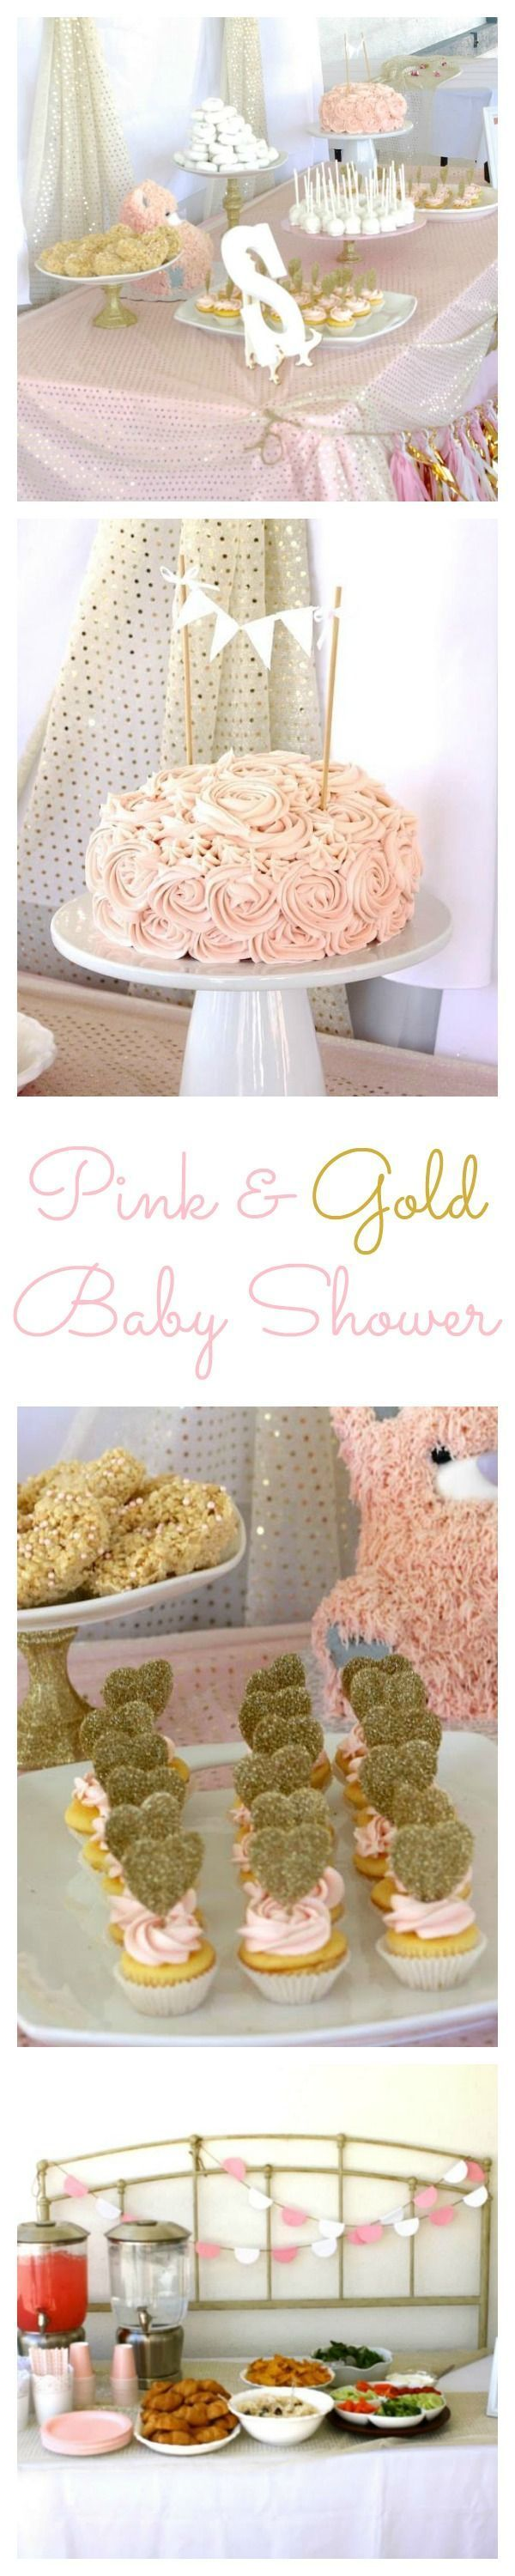 Hosting a baby shower and need some food ideas look no further since - Pink And Gold Baby Shower